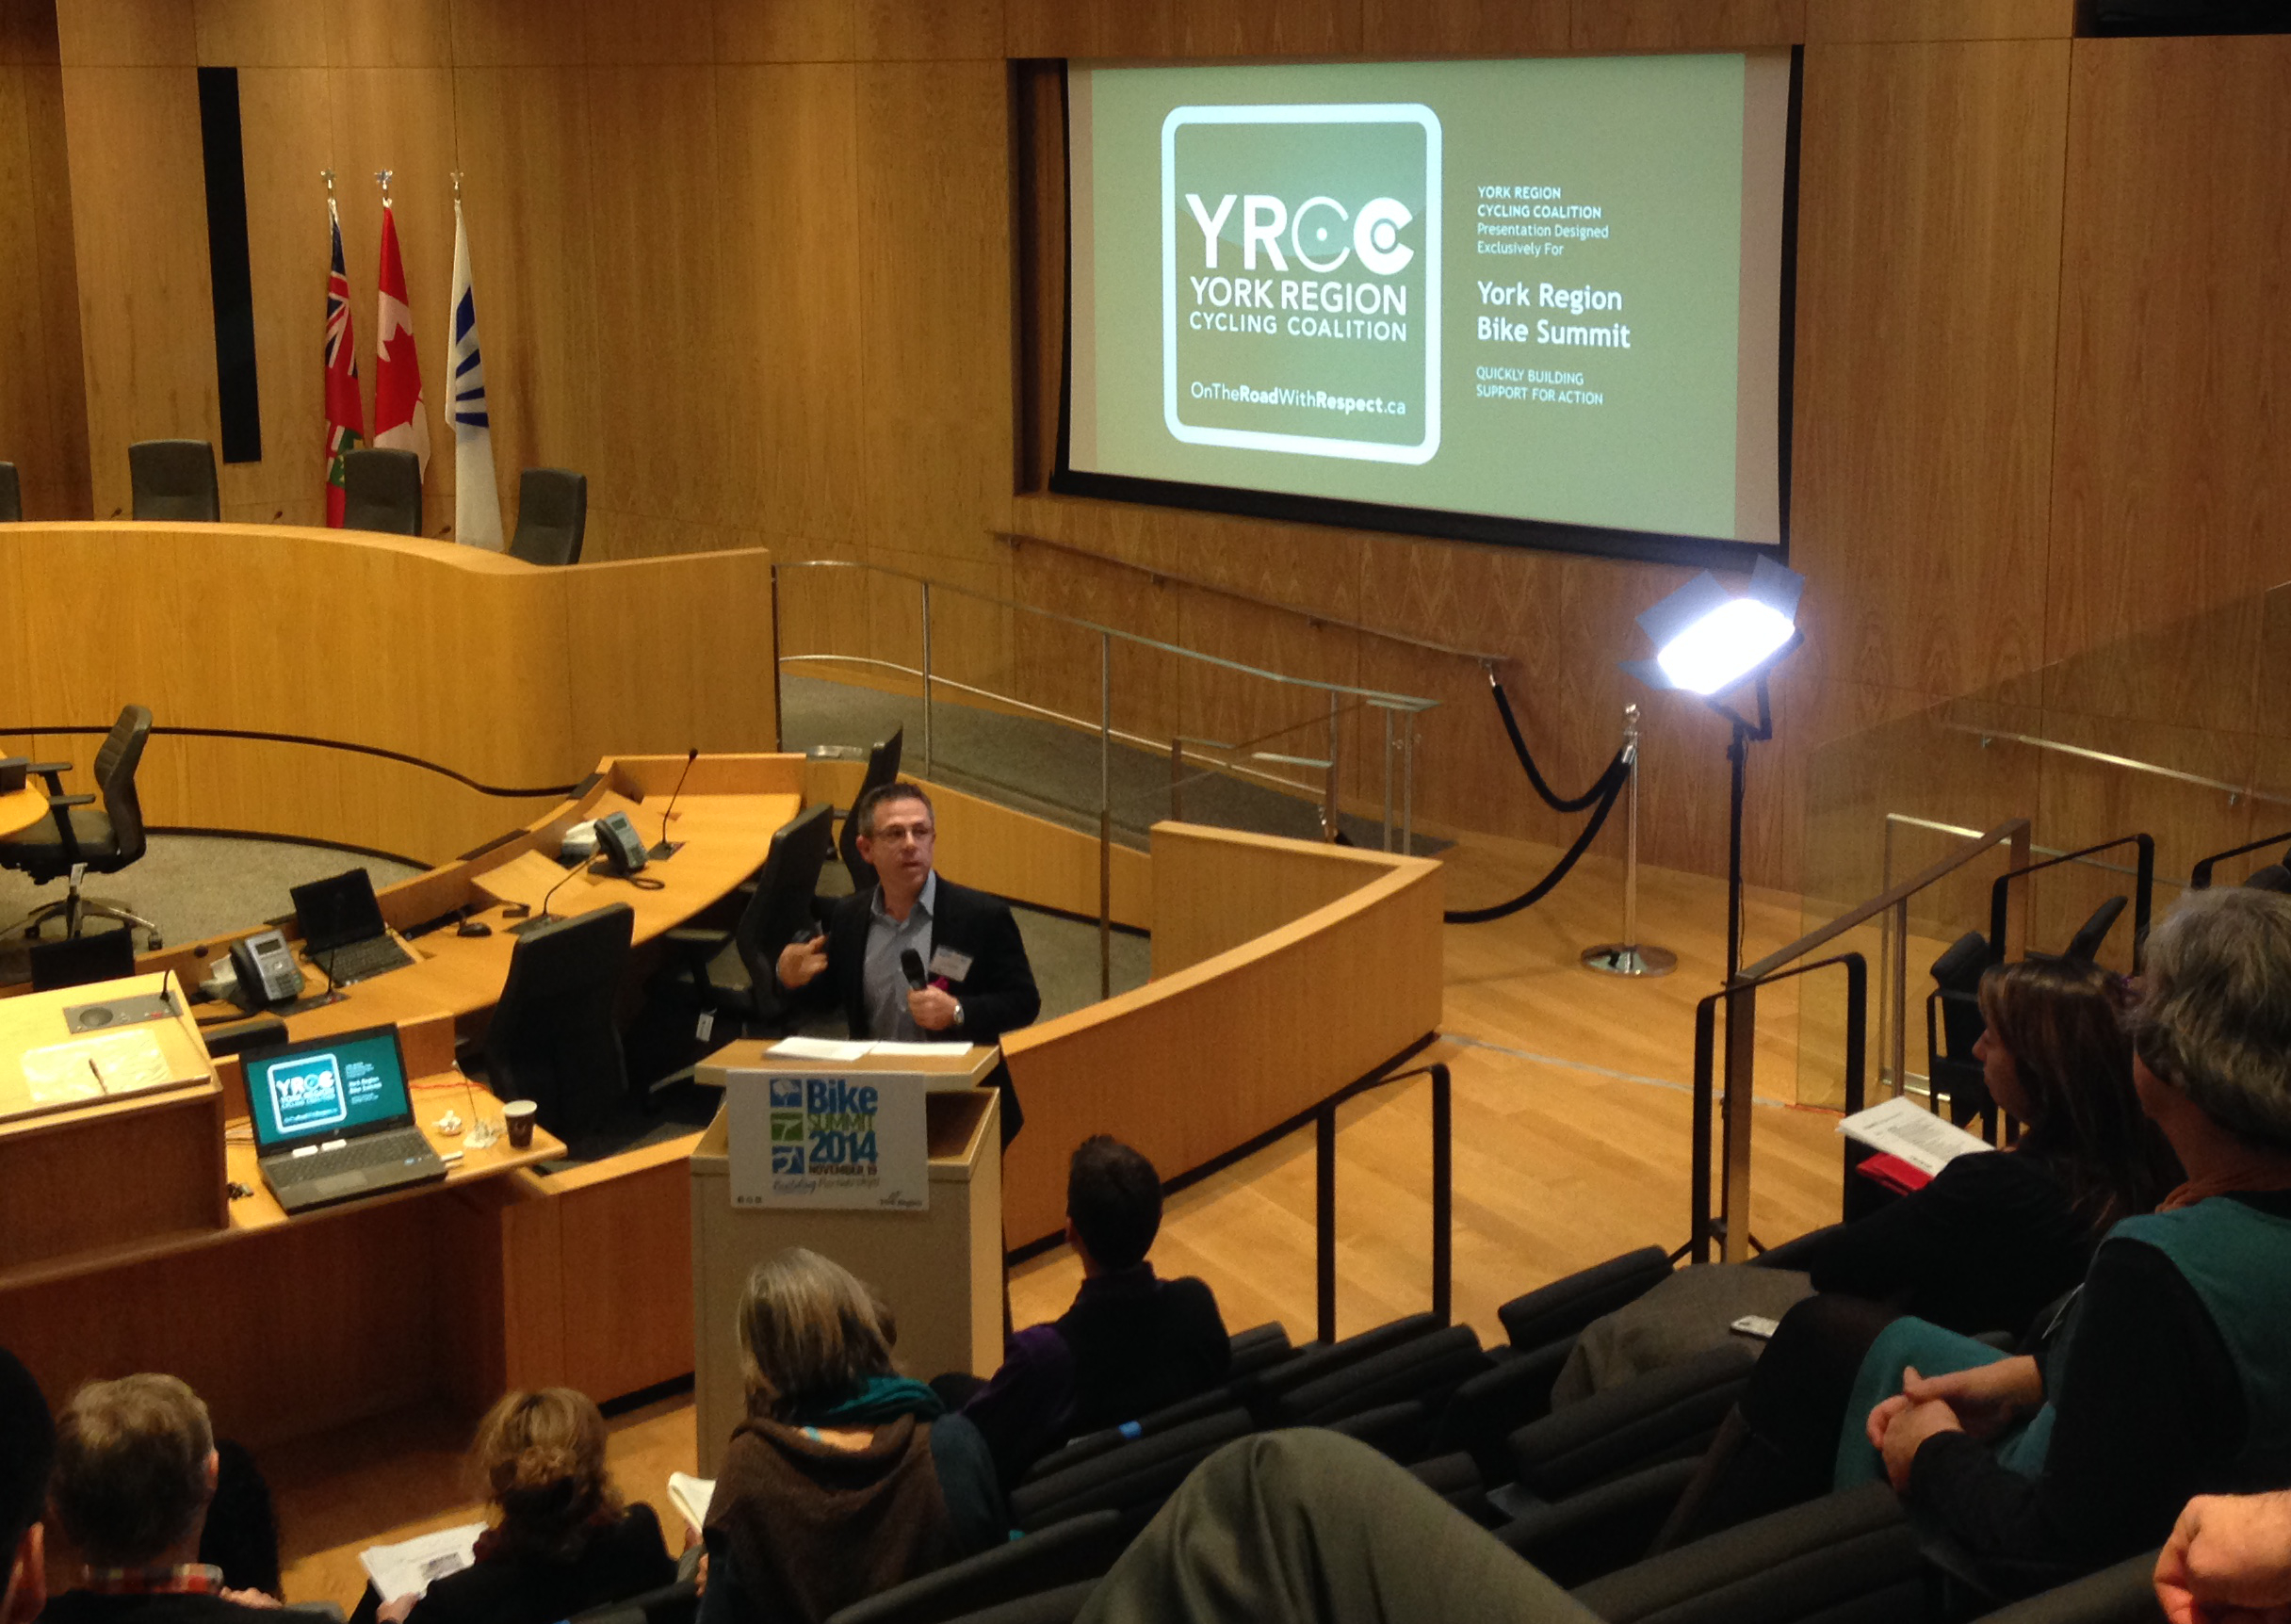 York Region Bike Summit a Big Success.